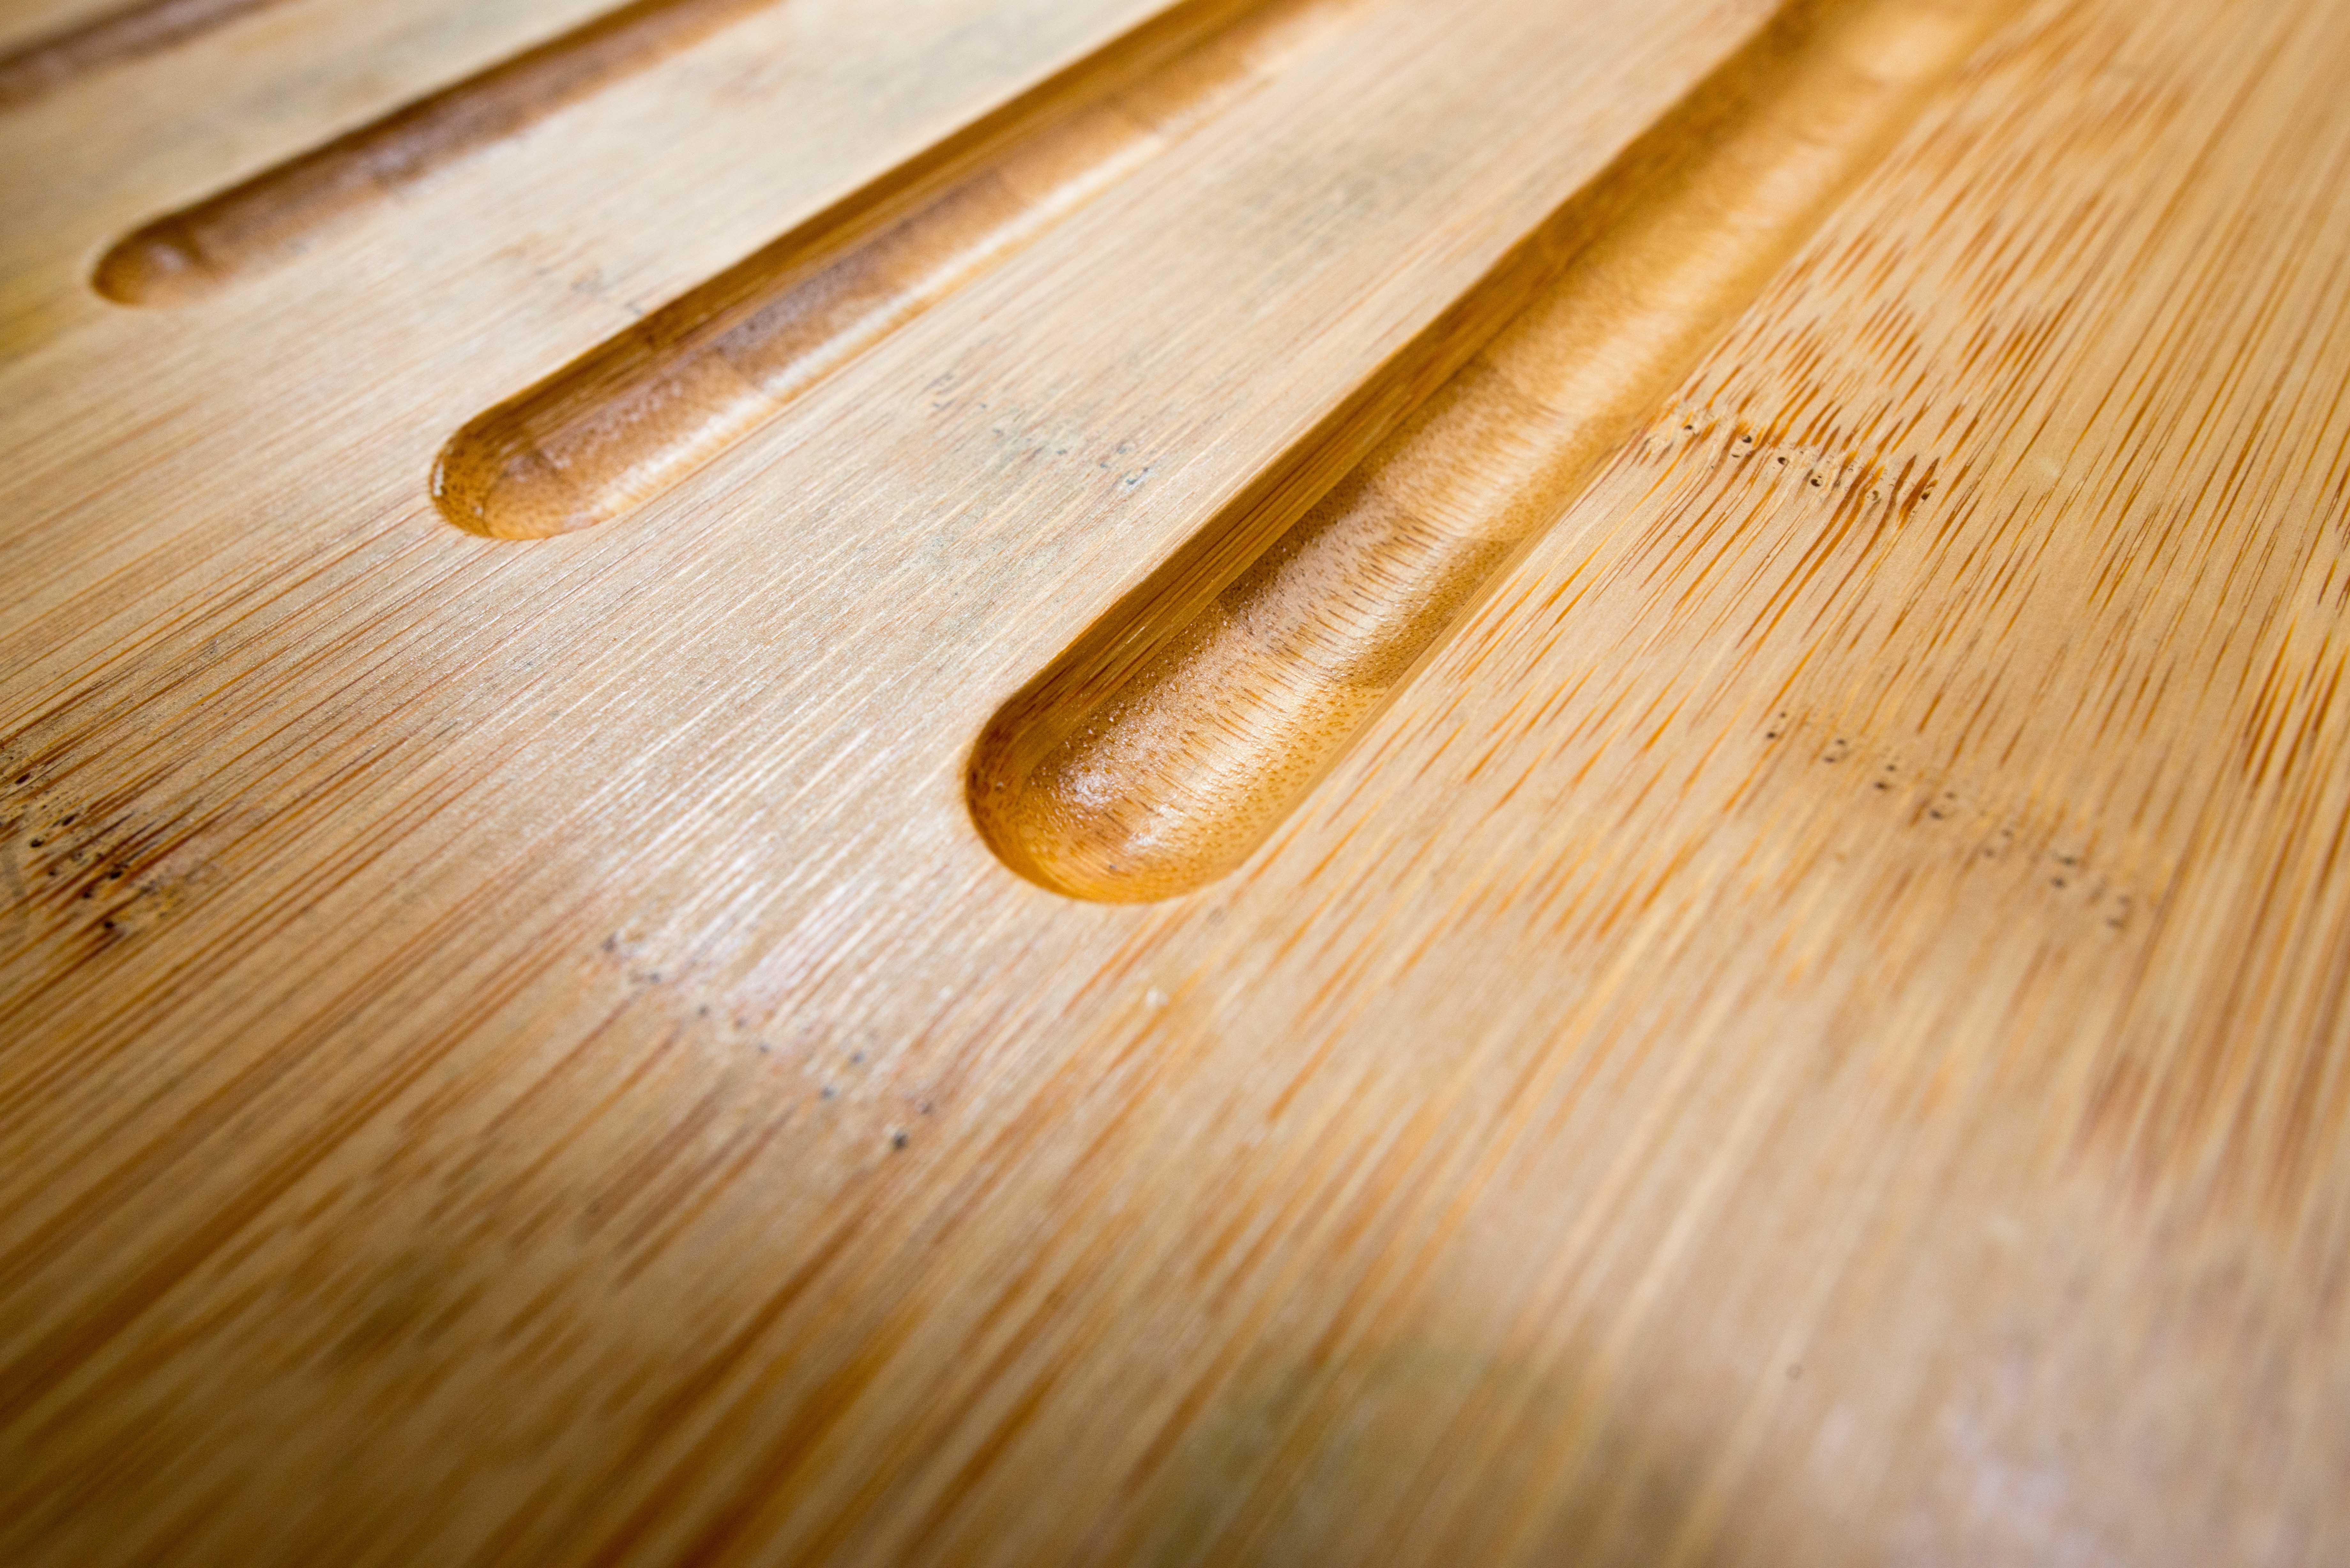 close up of bamboo worktop sink drainer grooves